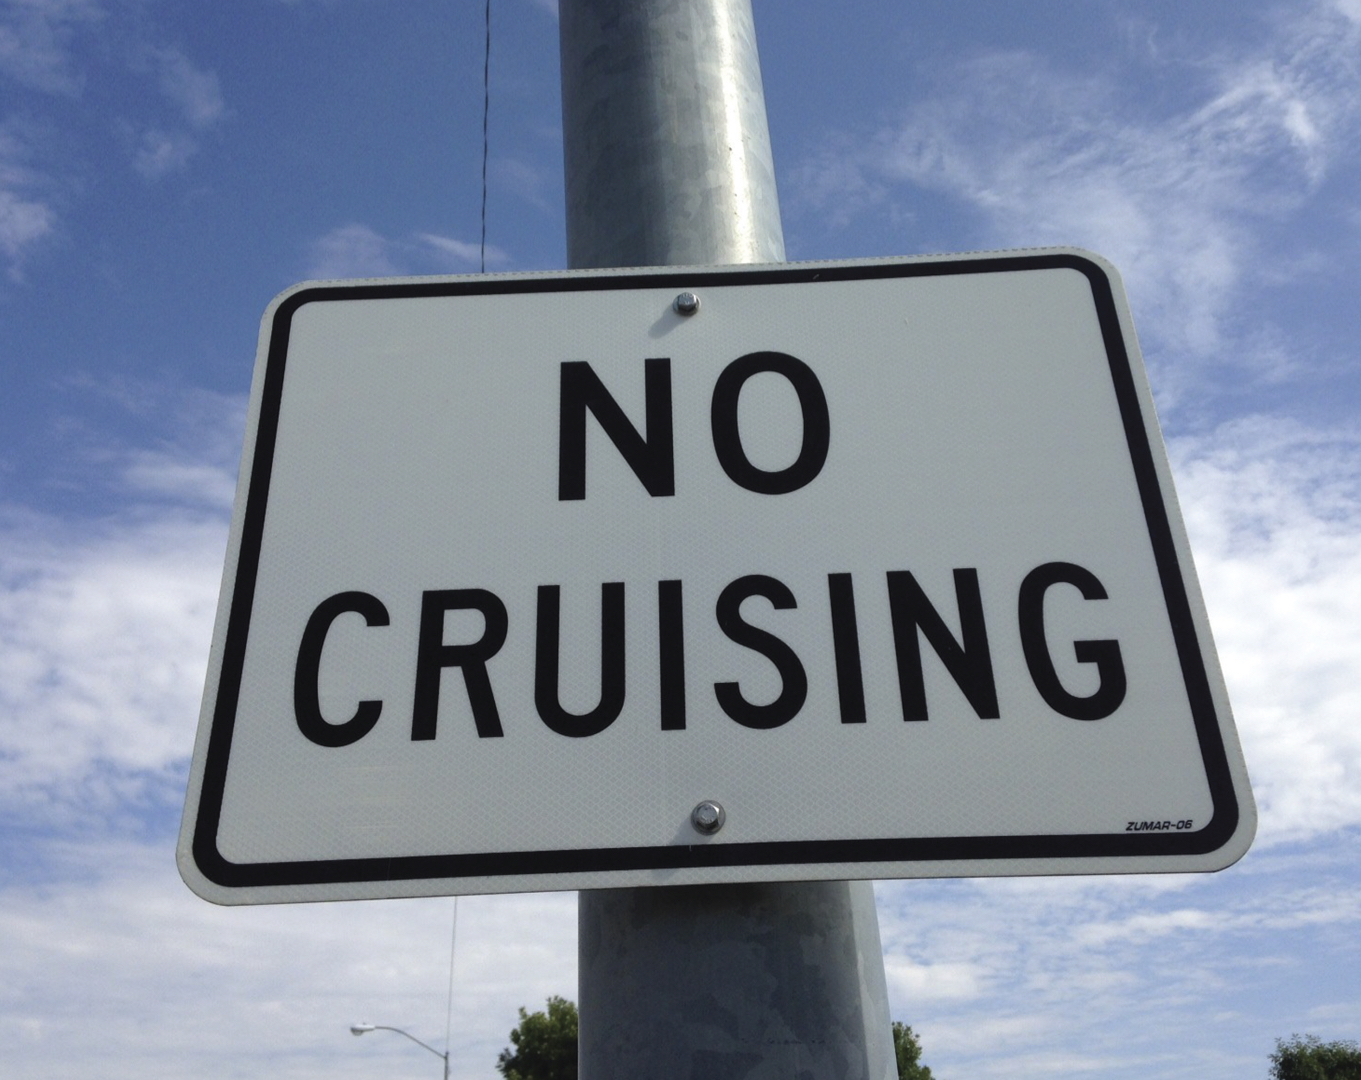 Street sign saying 'No Cruising' against blue sky background